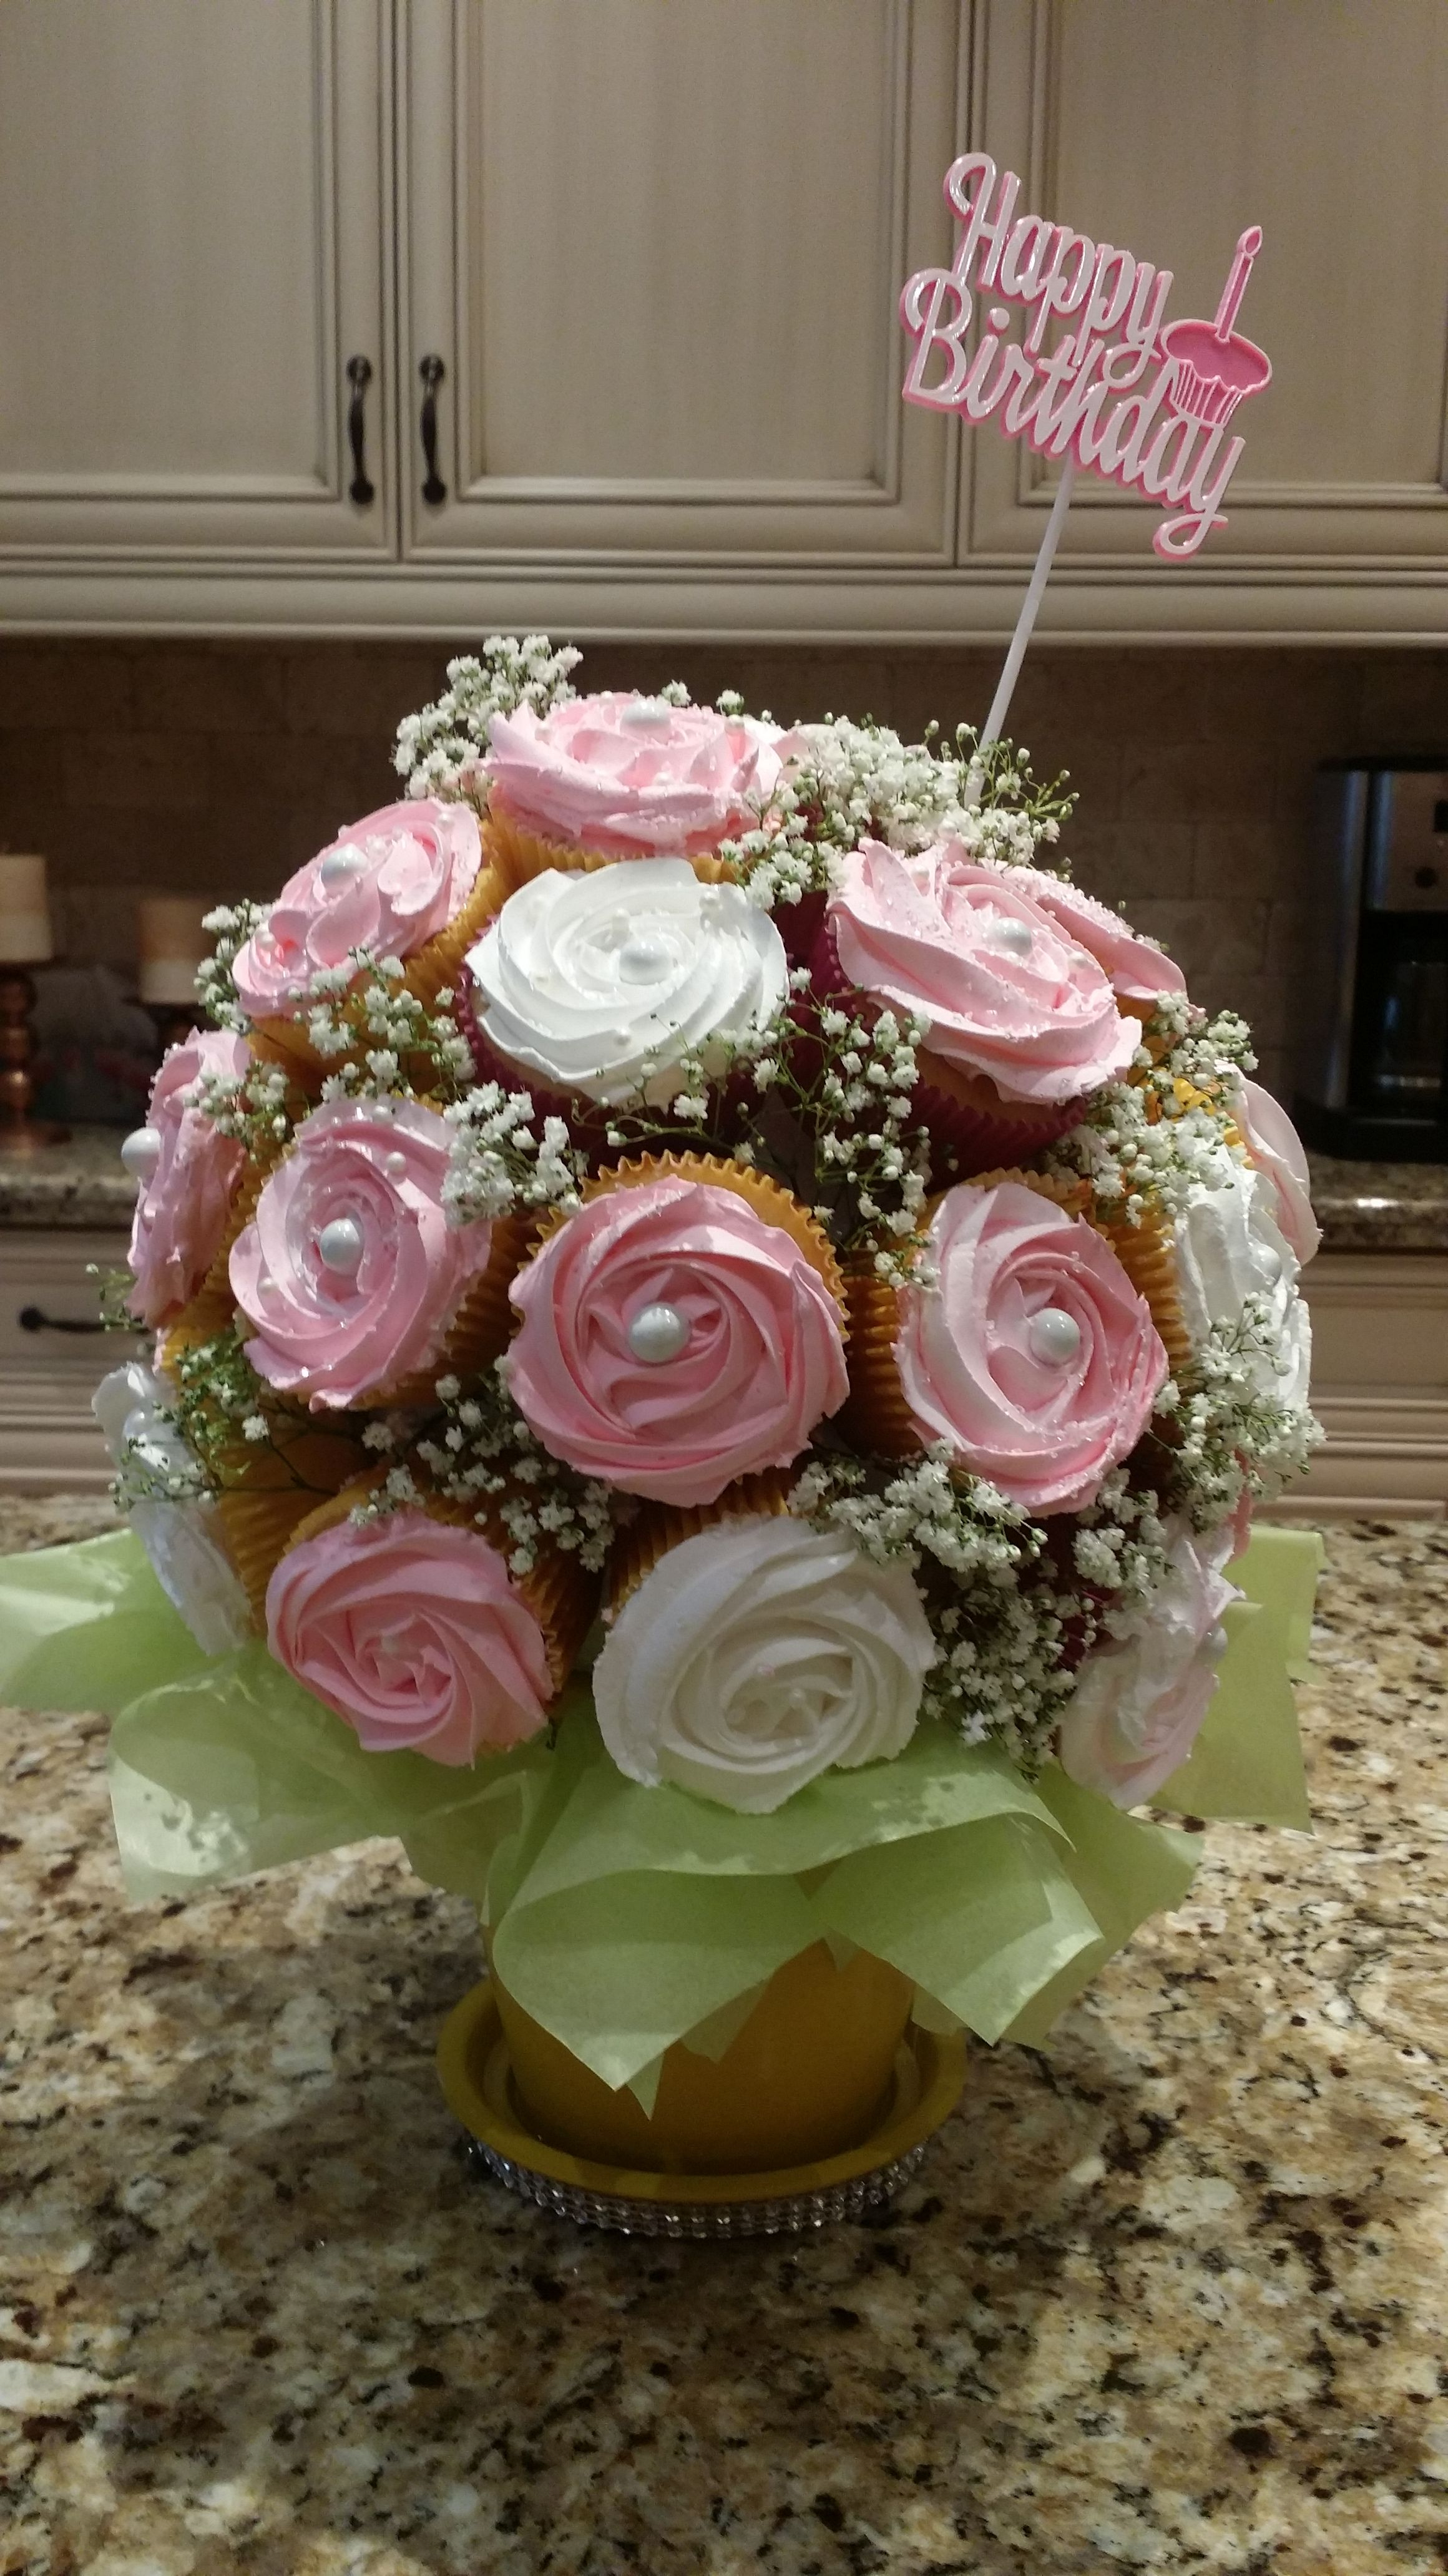 Cupcake Bouquet More   Repostería   Pinterest   Cake, Cup cakes and ...